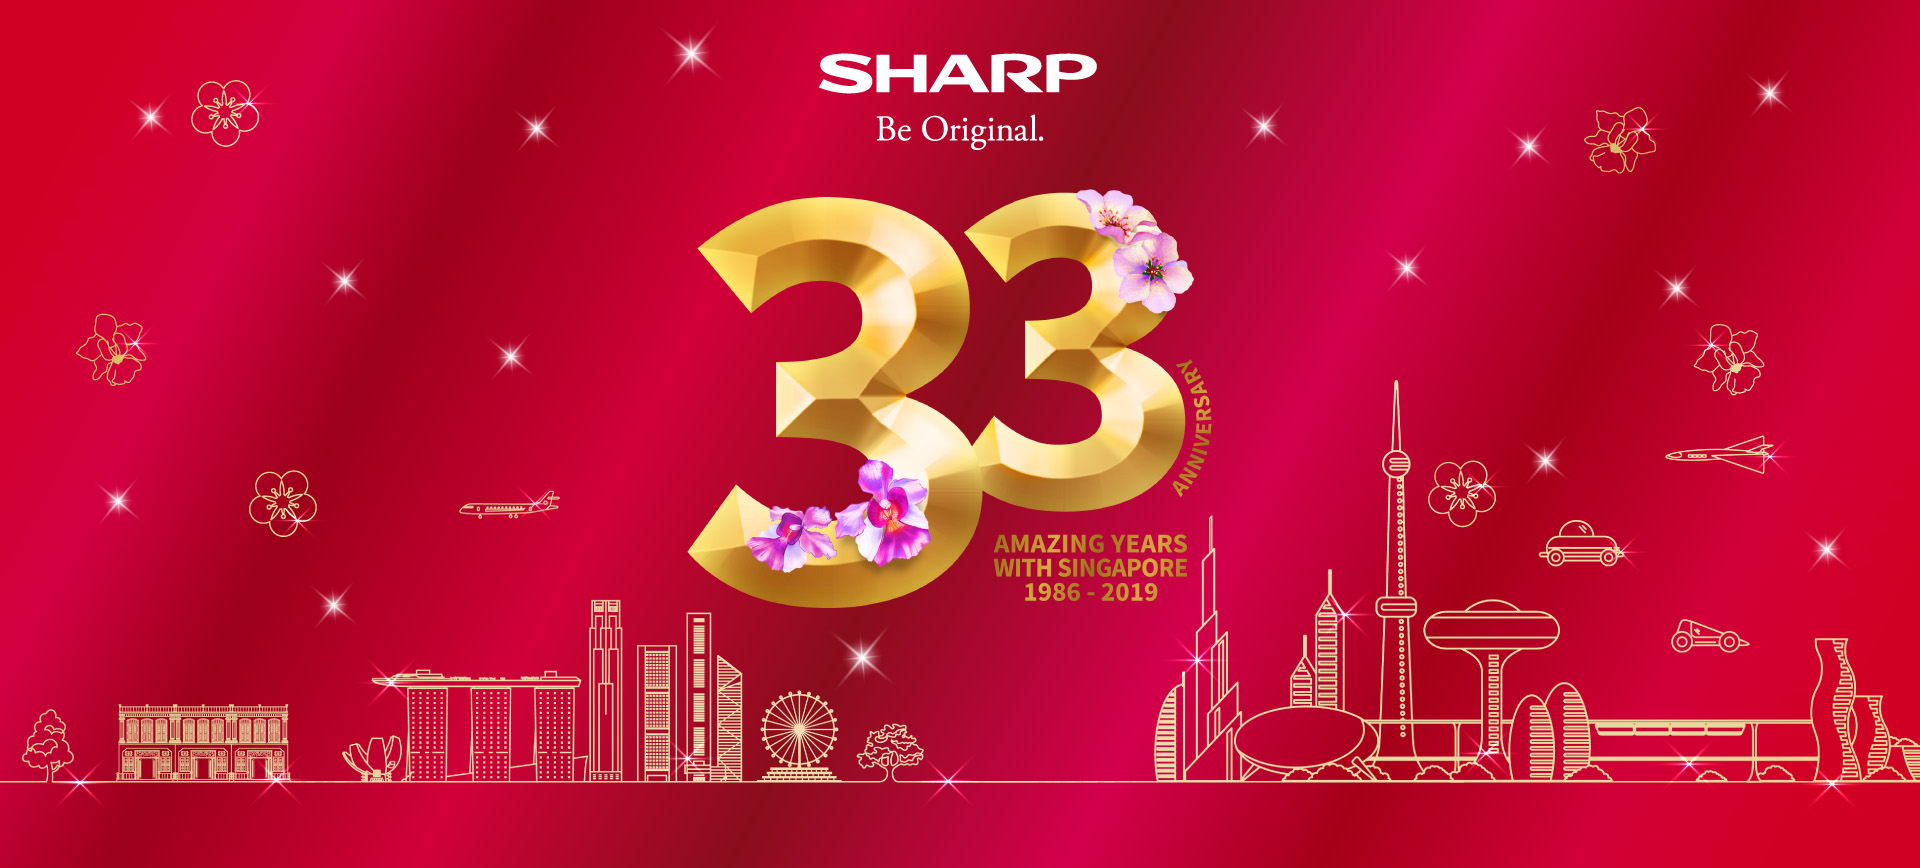 Sharp 33 Anniversary Amazing years with Singapore